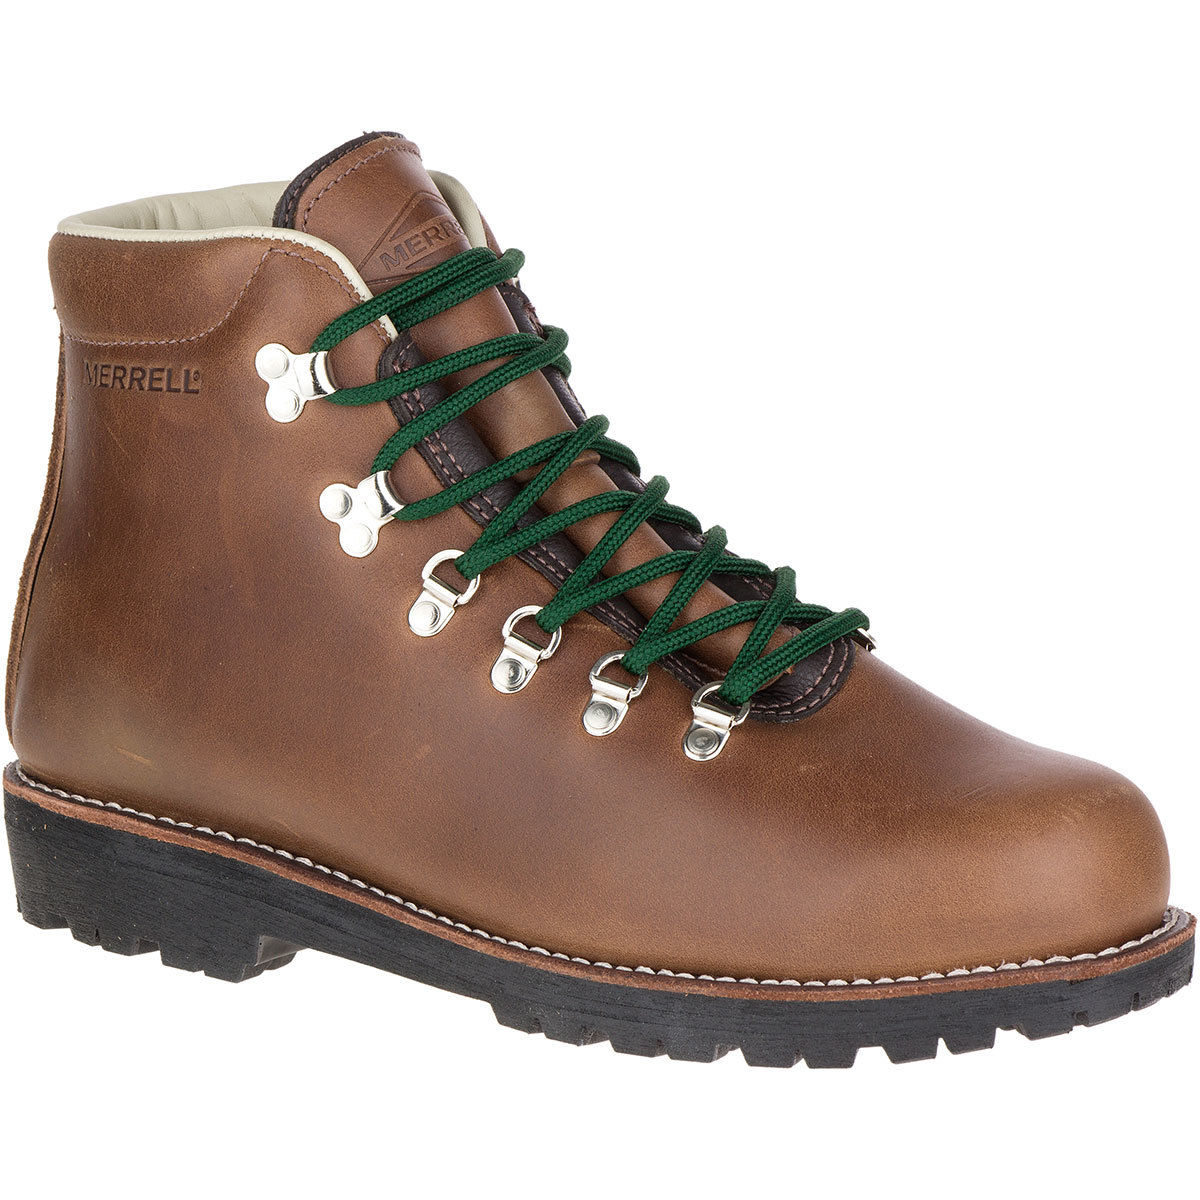 photo: Merrell Wilderness backpacking boot